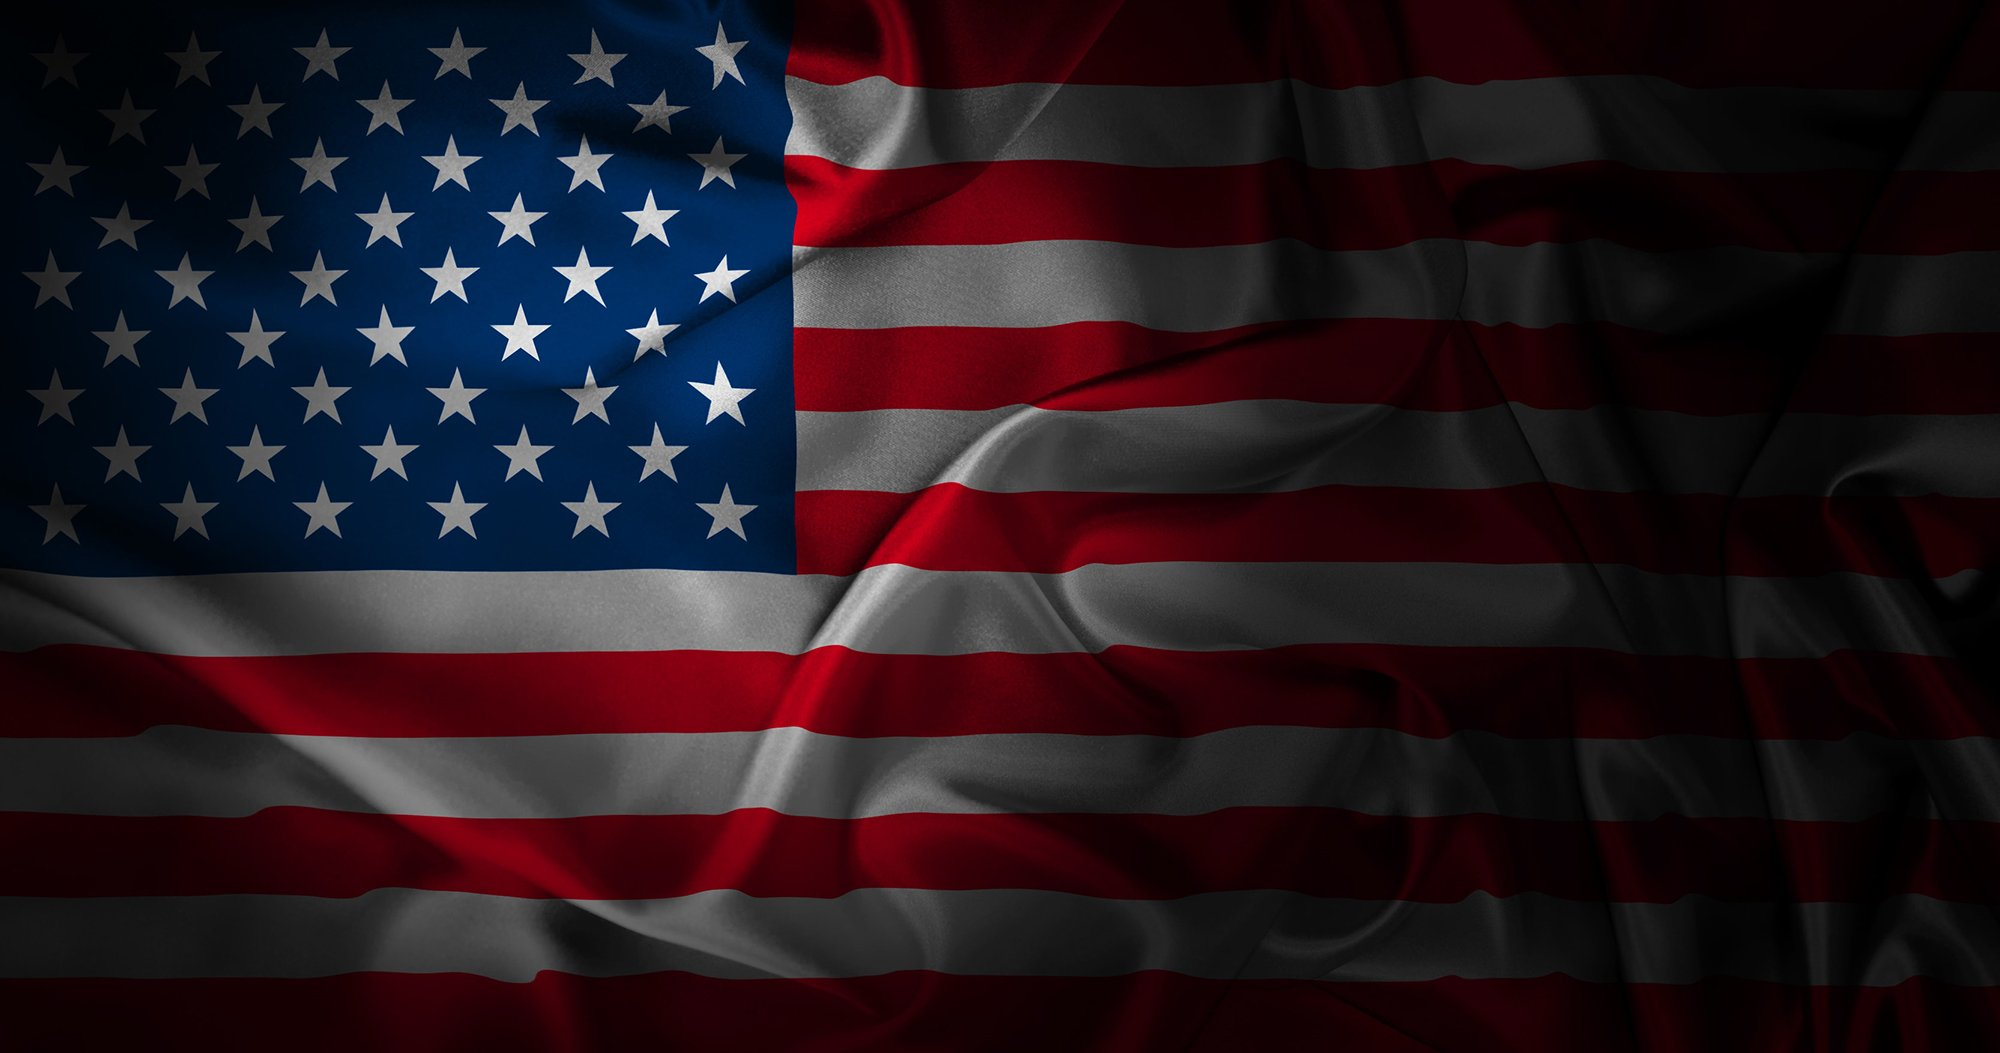 4th July Party at Winston's Bar & Grill 3:00pm